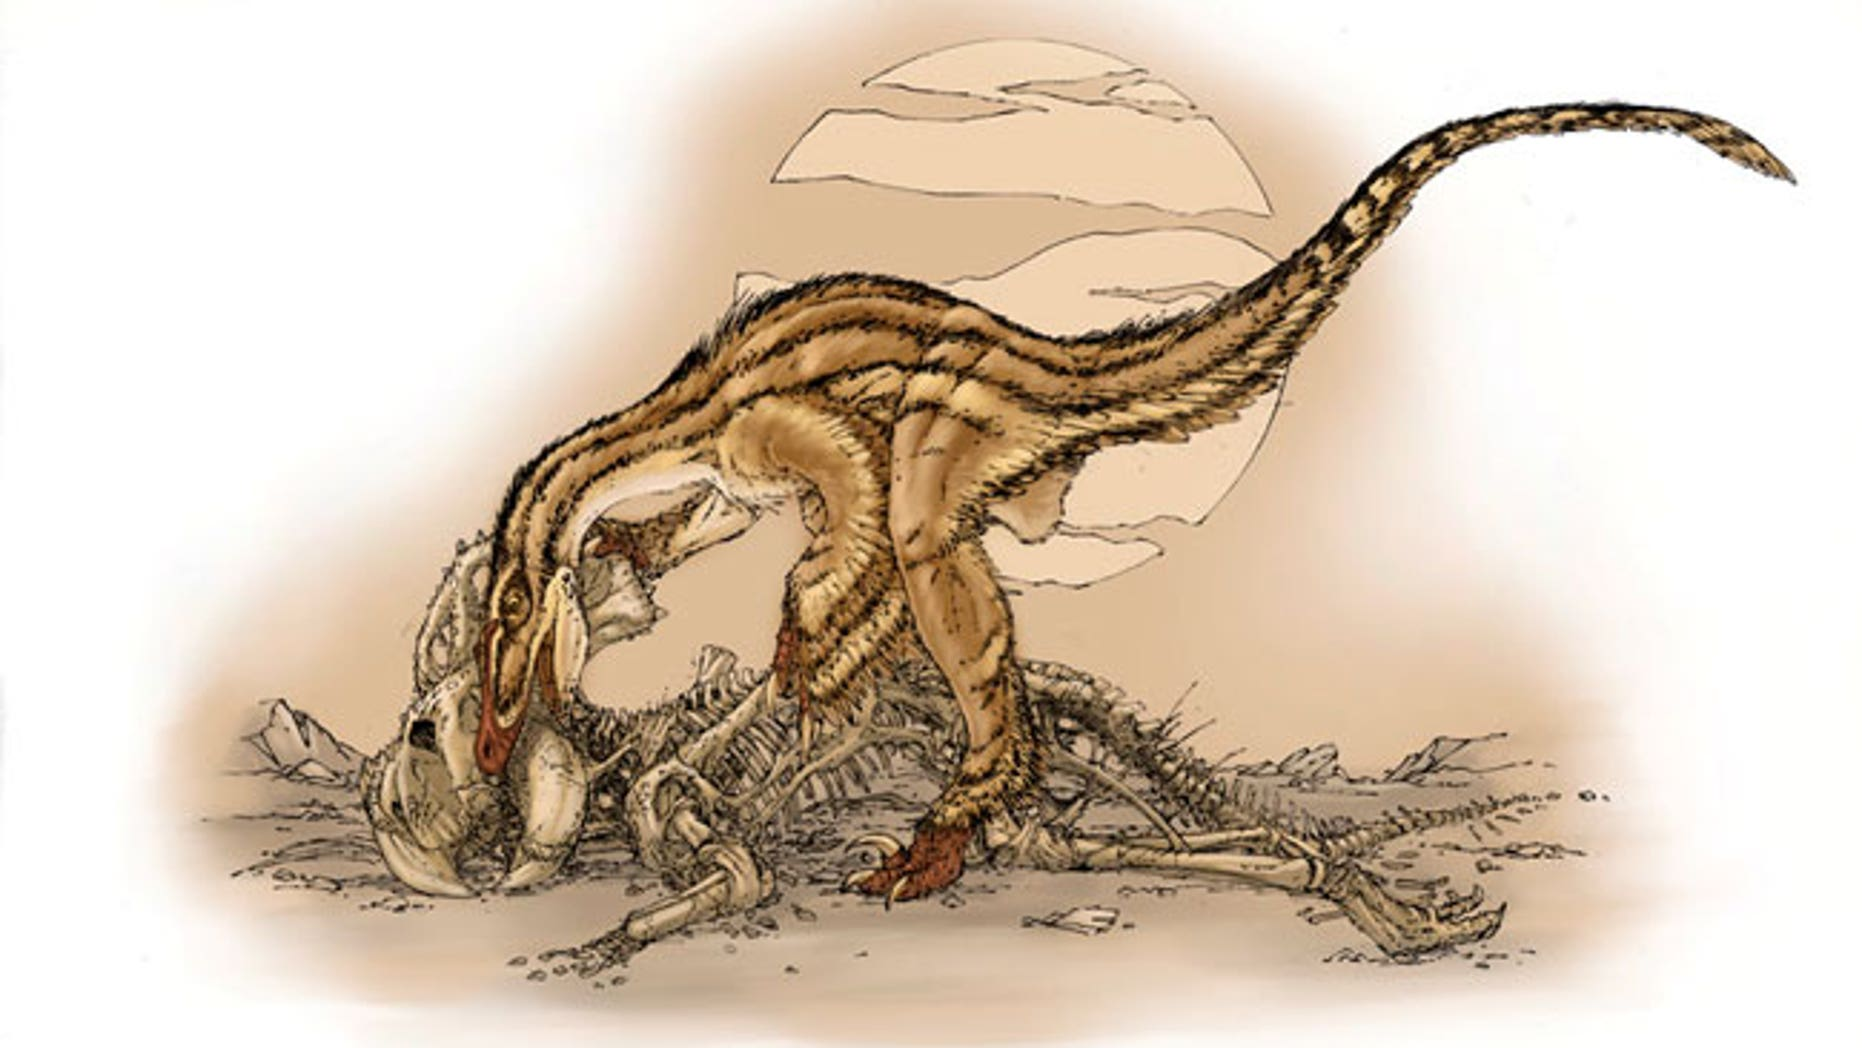 Fossils suggest a Velociraptor dinosaur apparently scavenged on the remains of a Protoceratops. The Velociraptor teeth matched the bite marks on the bones of Protoceratops.